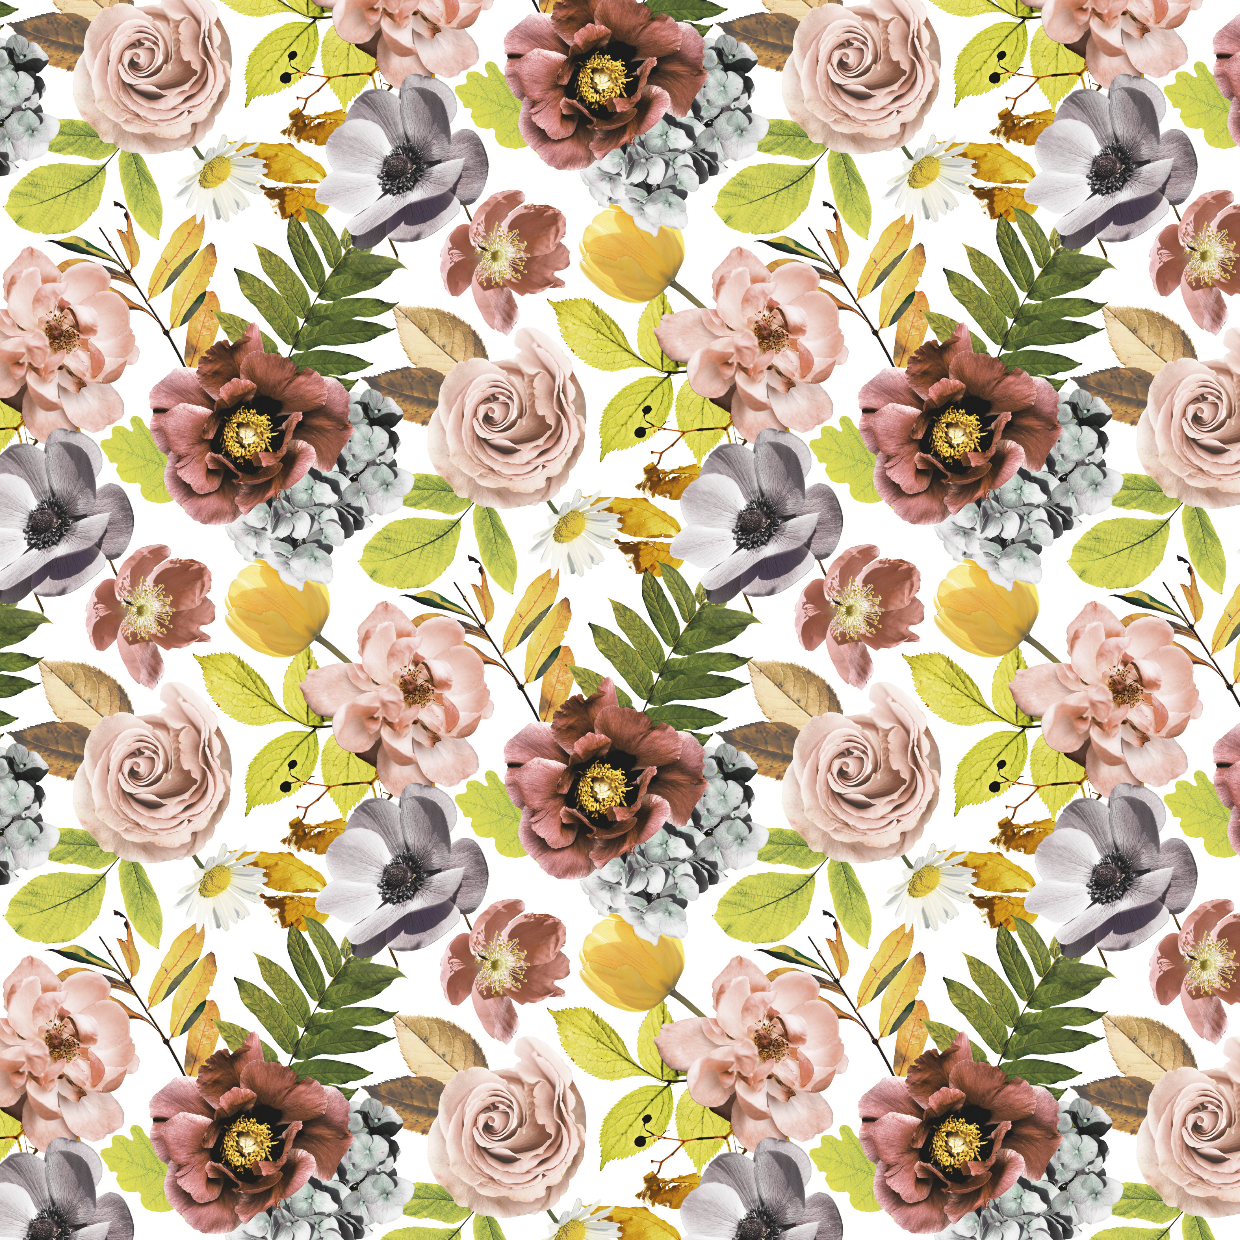 PRE ORDER - Autumn Garden Small White - Digital Fabric Print